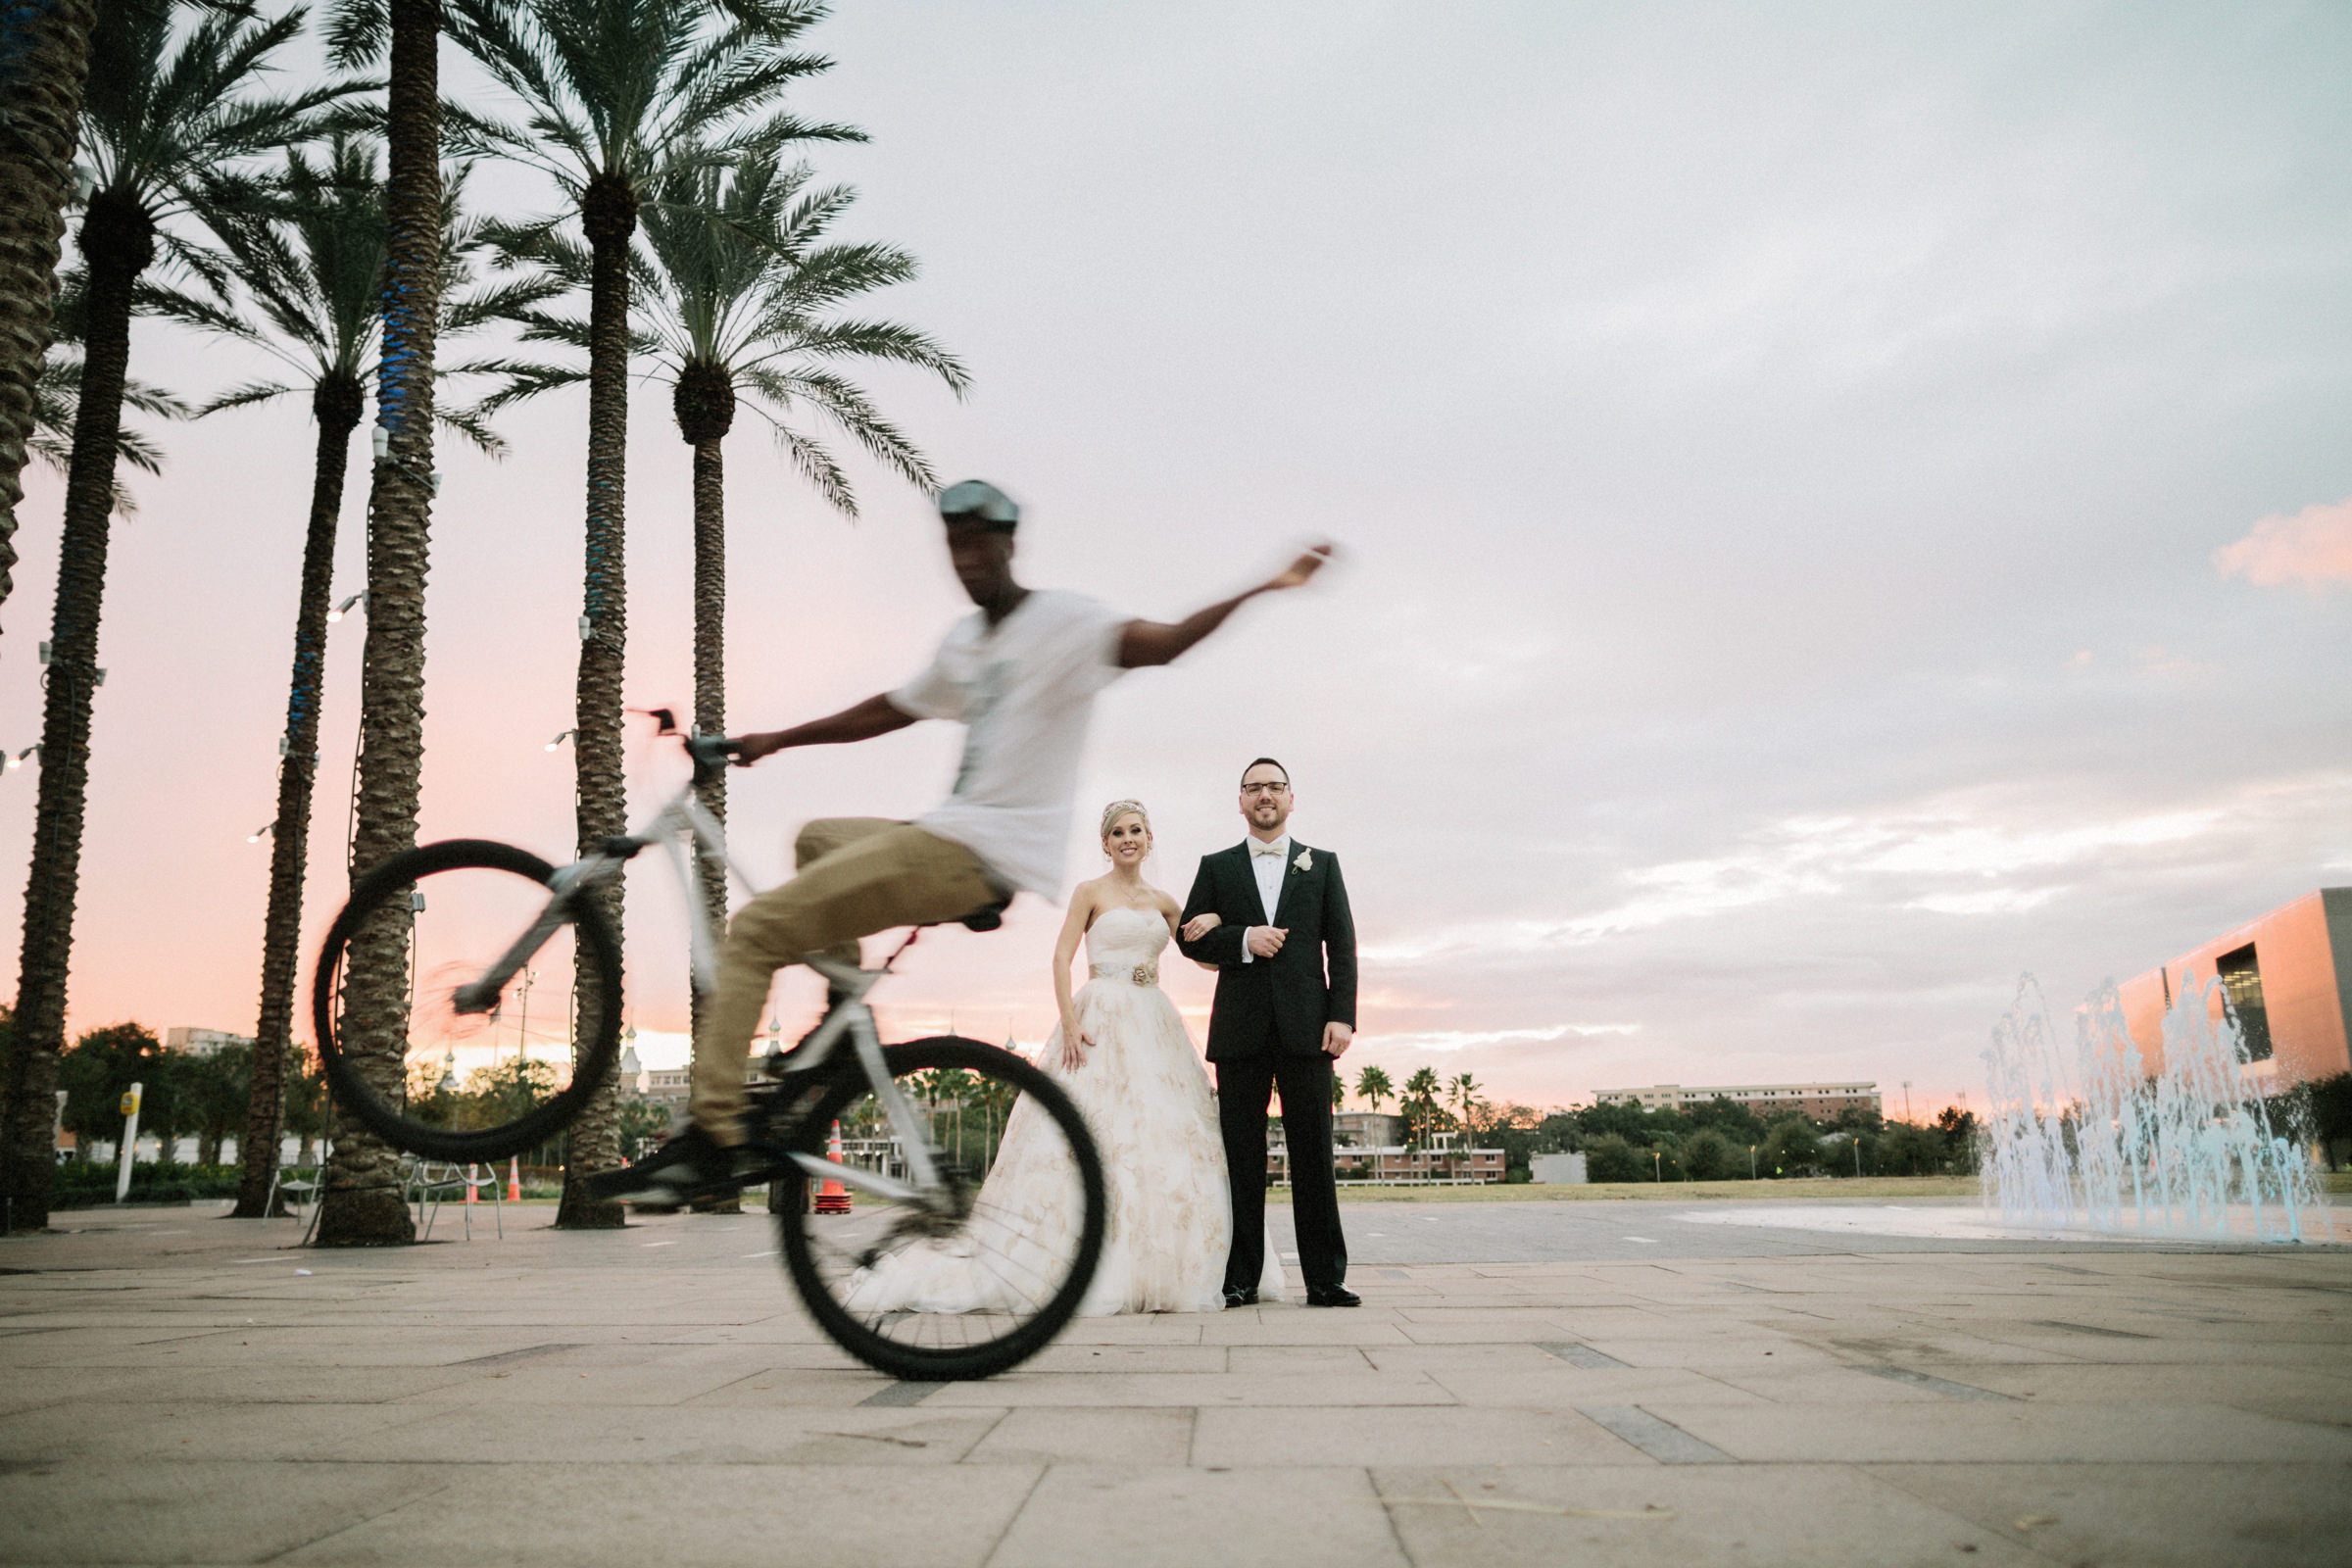 Couple portrait in tropics with trick bicyclist - photo by Jonas Seaman Photography